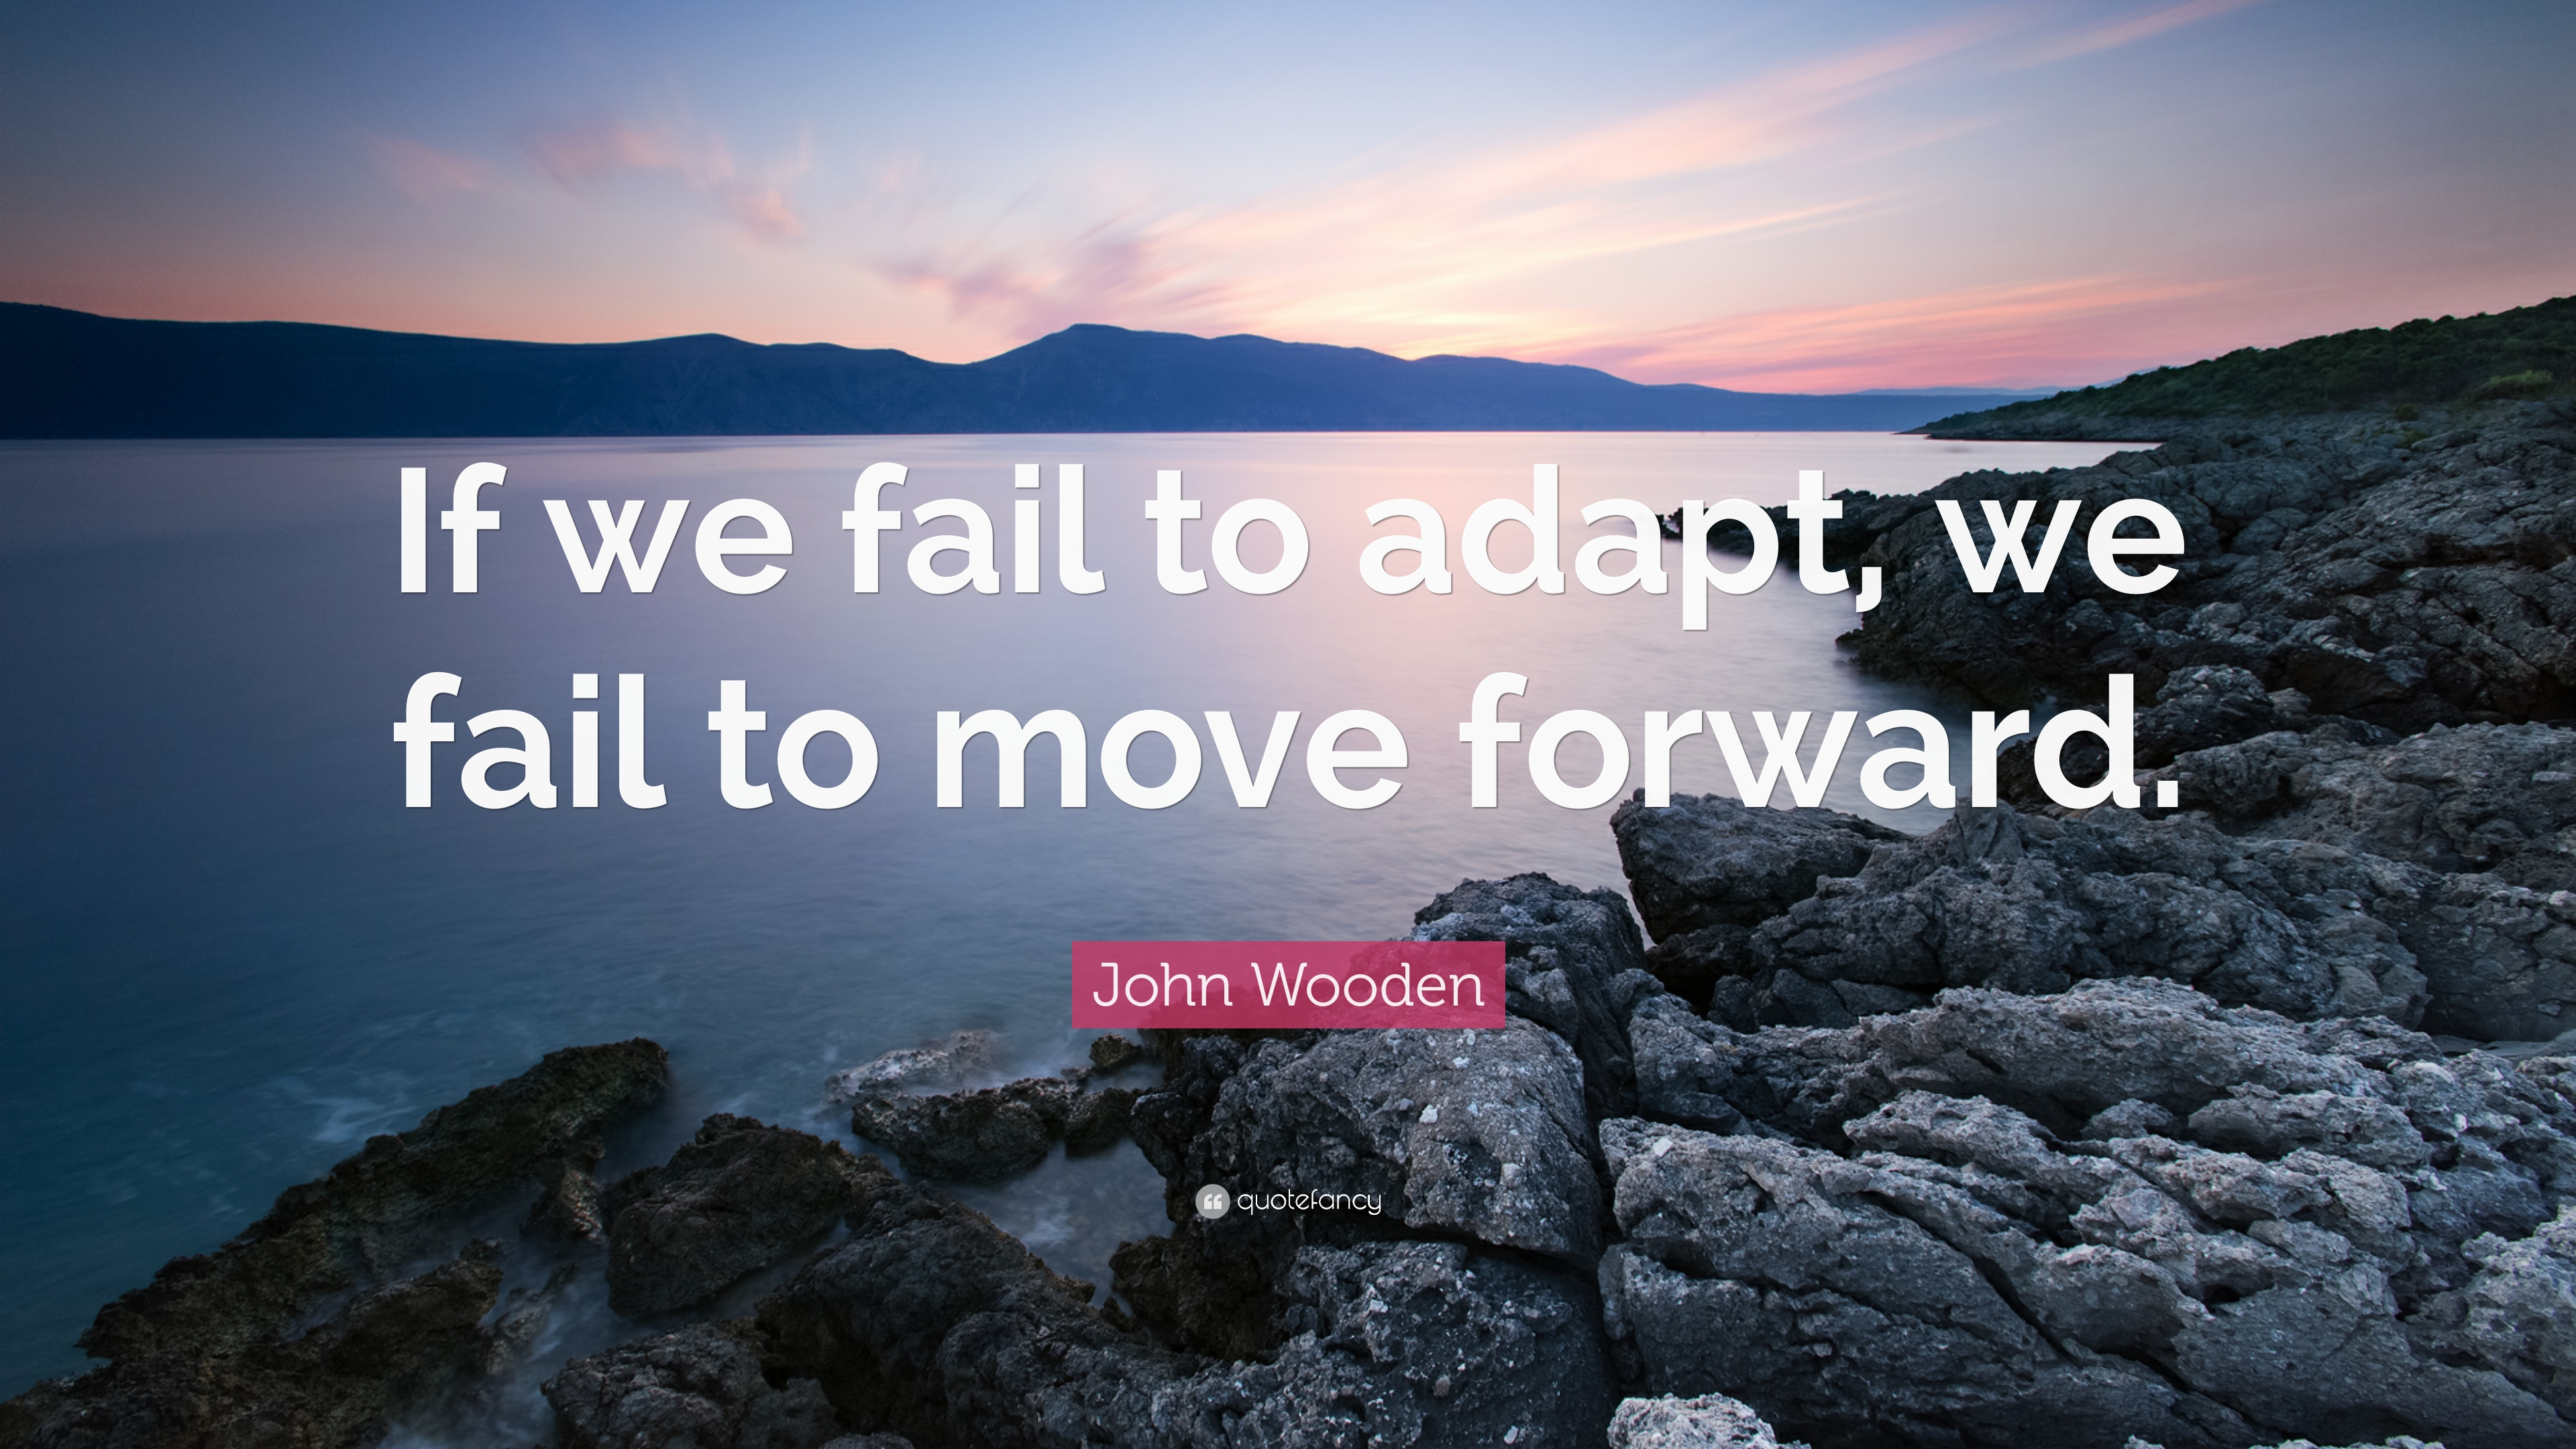 Moving Forward Quotes 42 Wallpapers Quotefancy